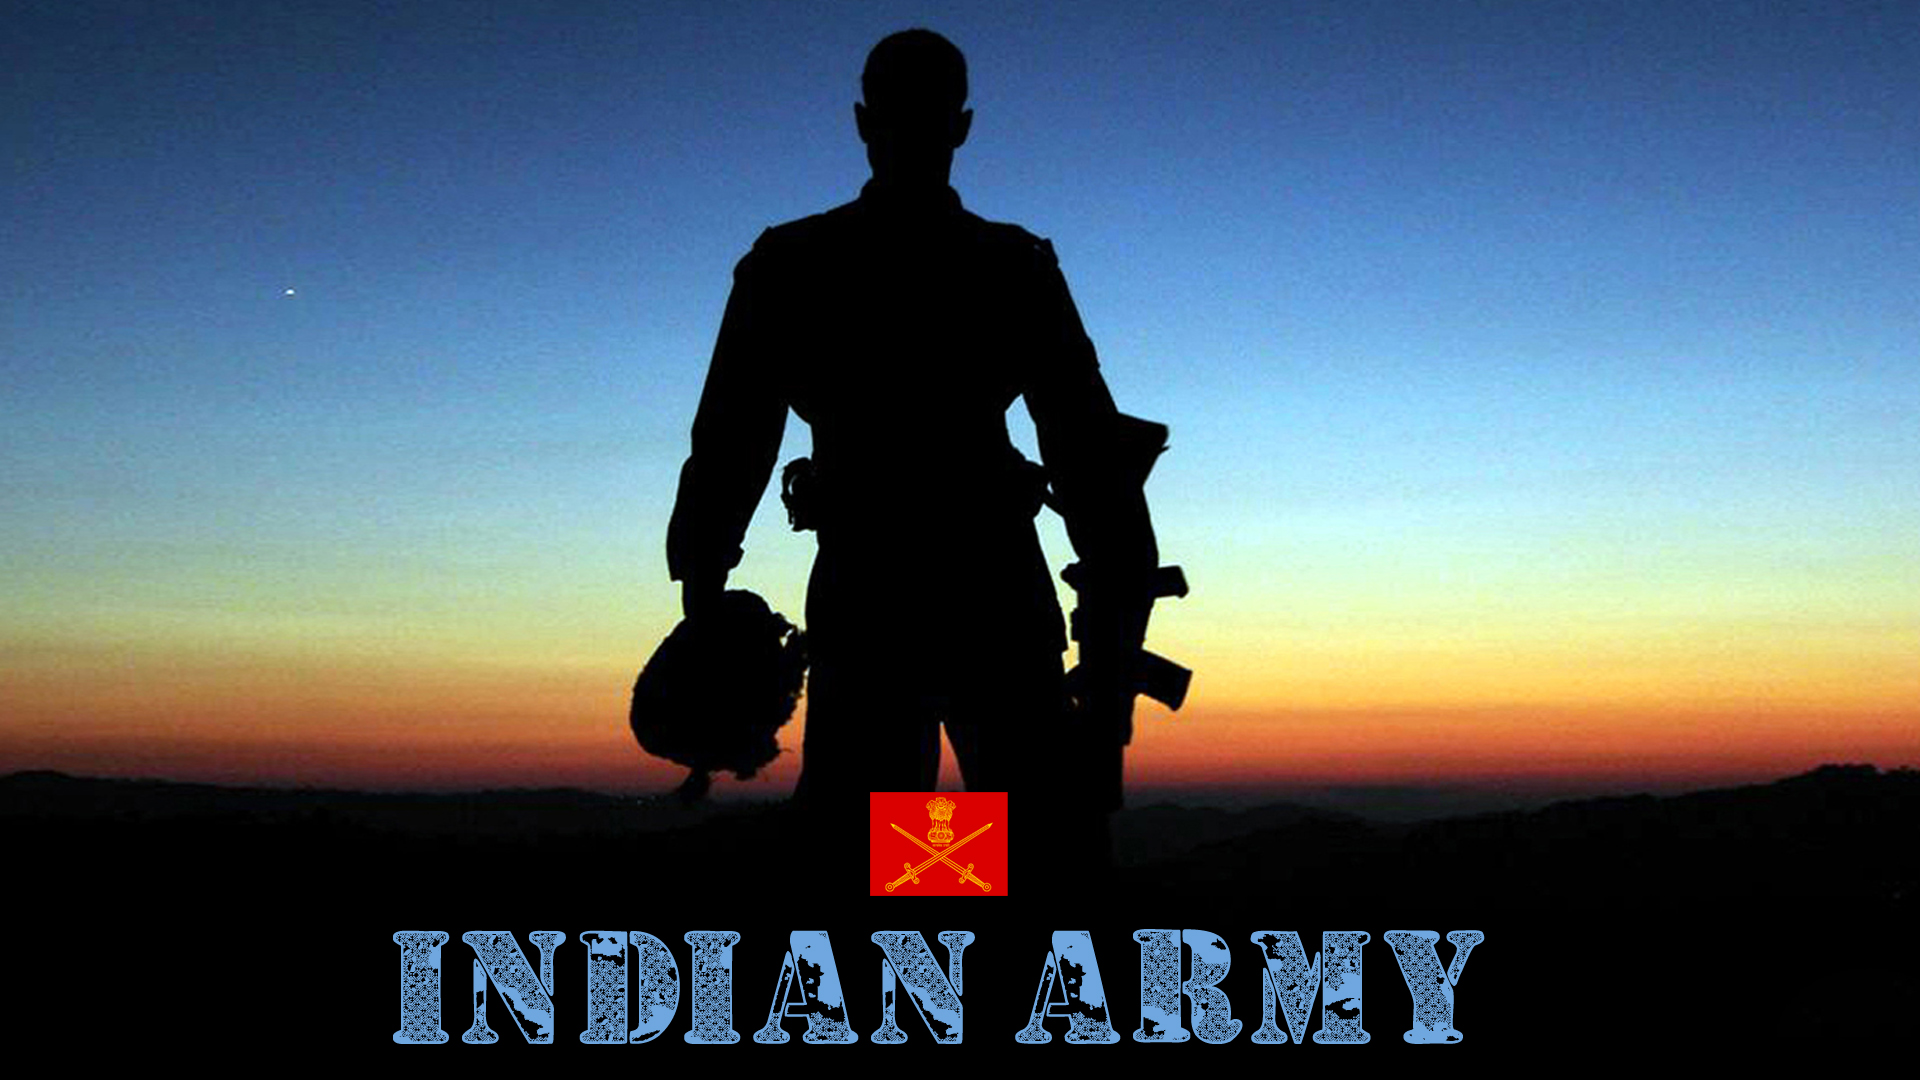 Indian Army HD Wallpapers 1080p Download With Picture Of